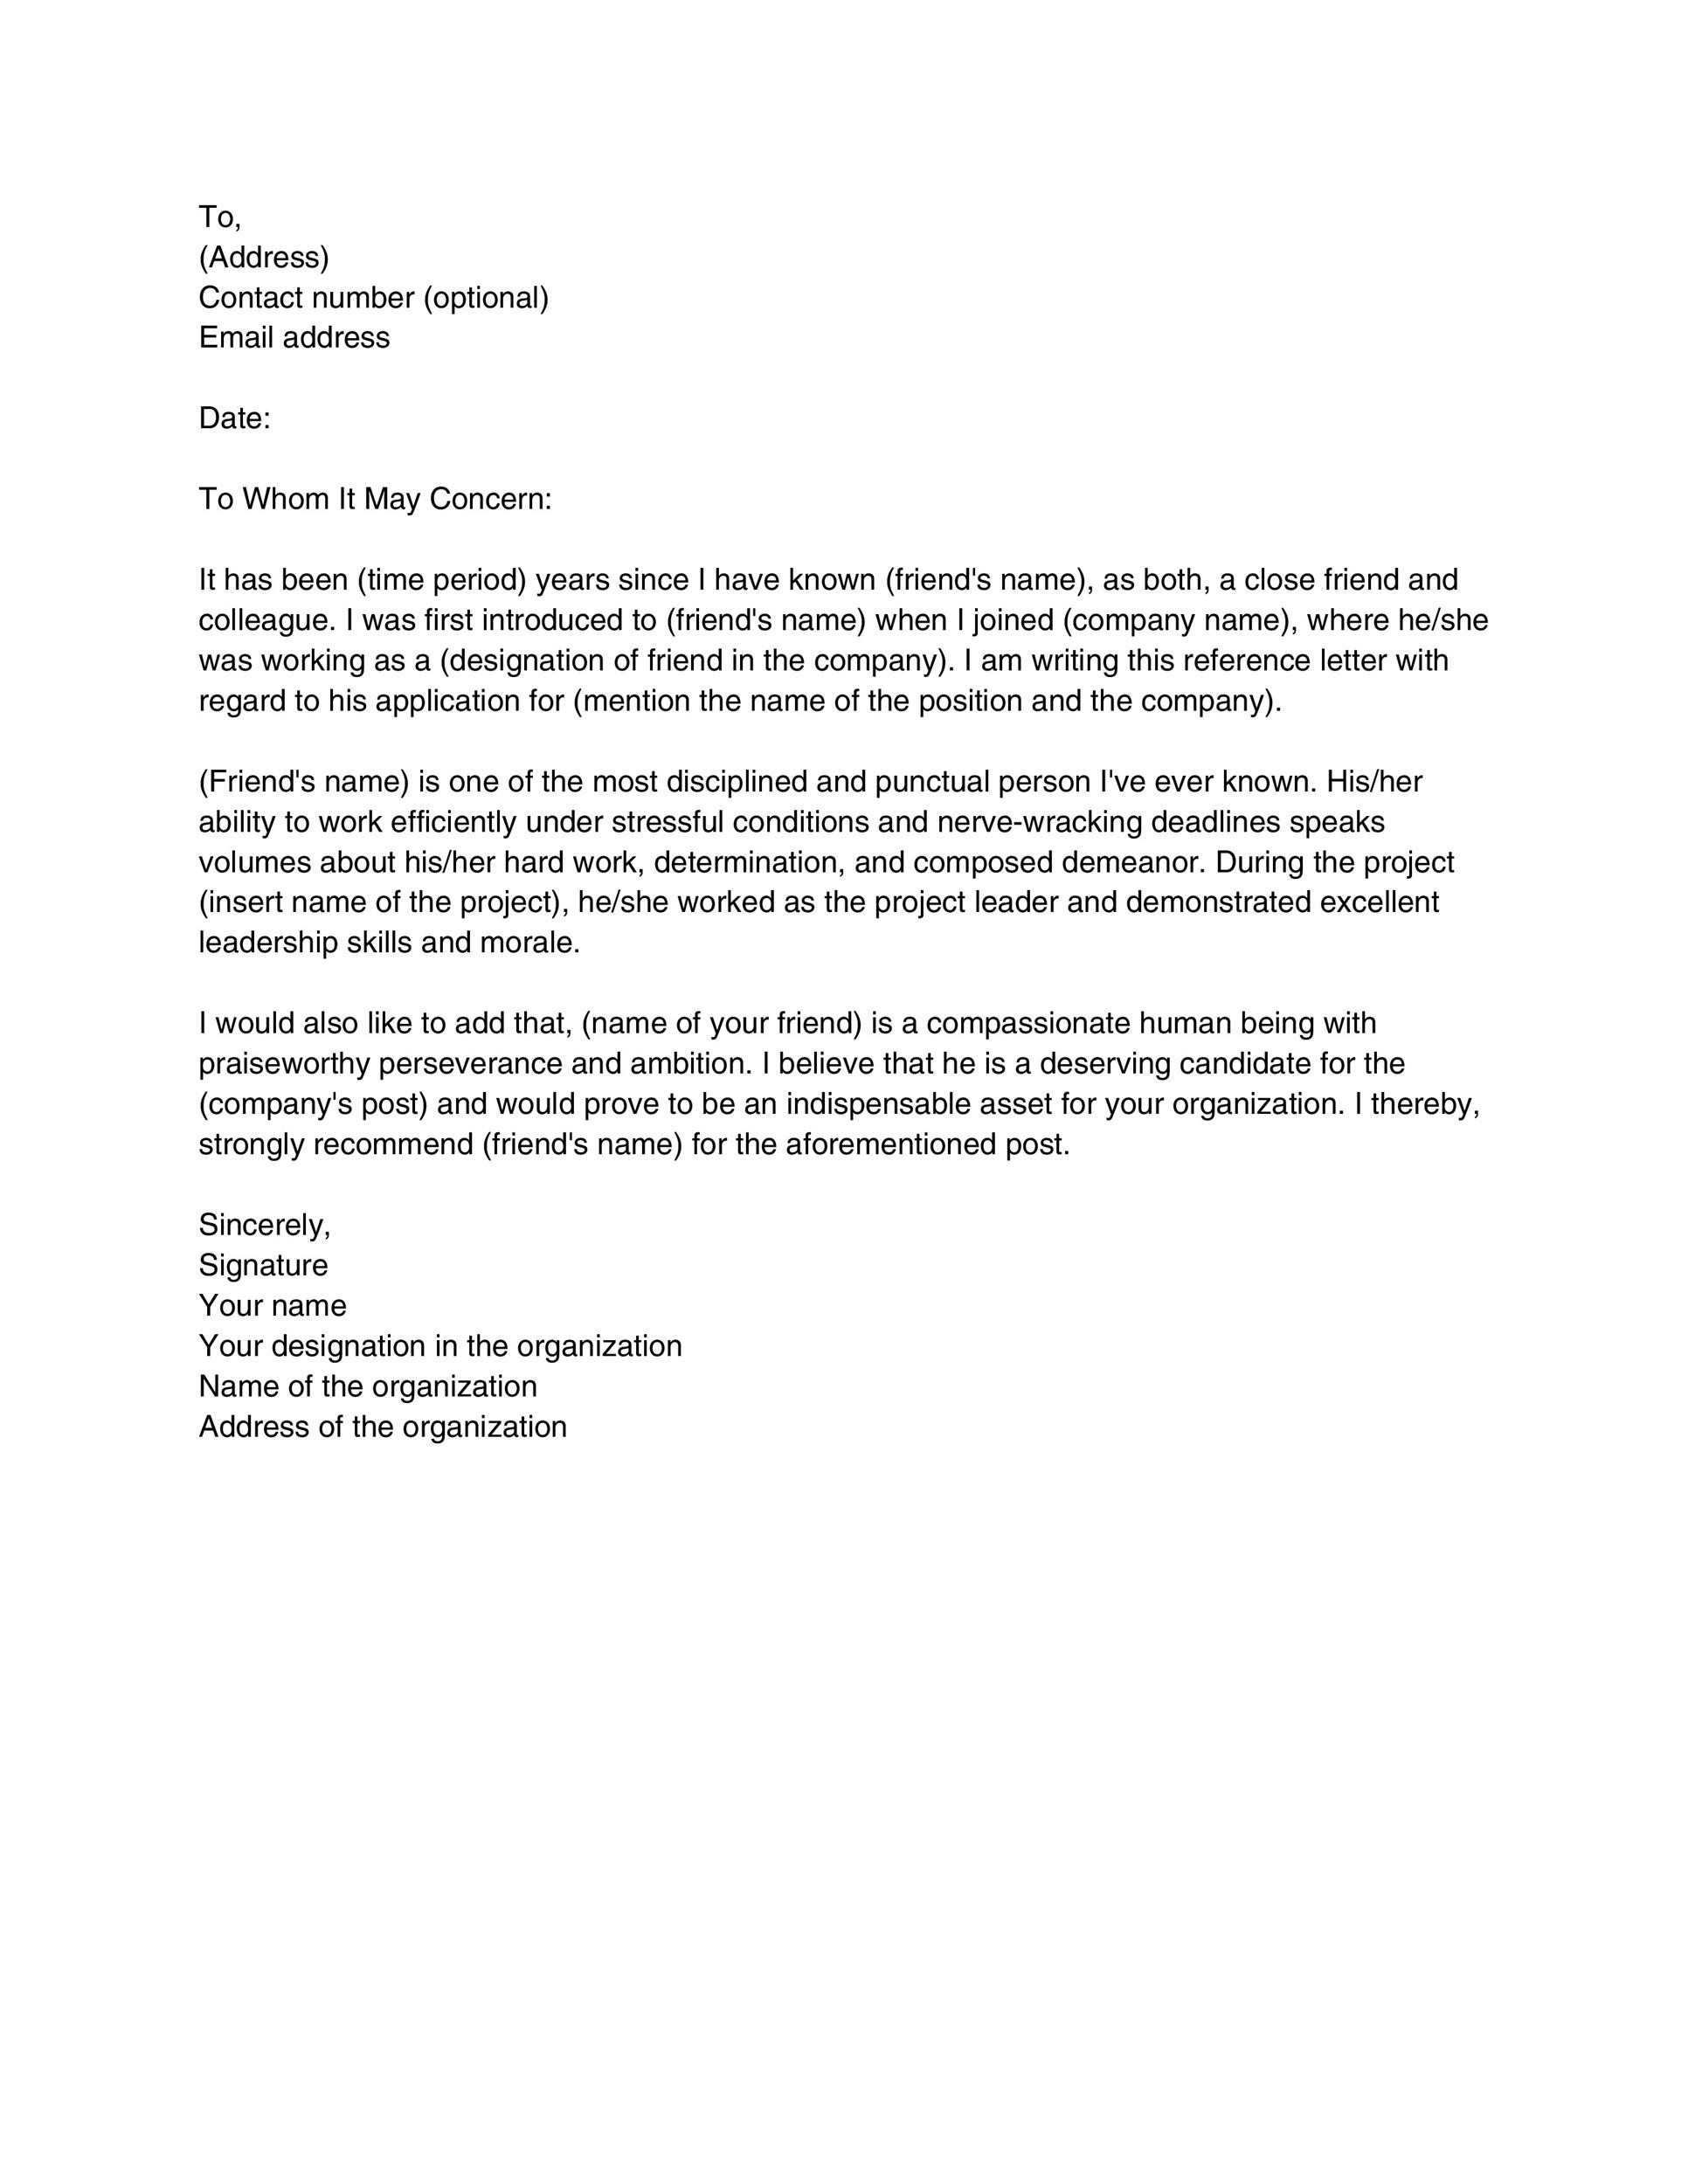 40+ Awesome Personal / Character Reference Letter Templates FREE - letter of recommendation templates